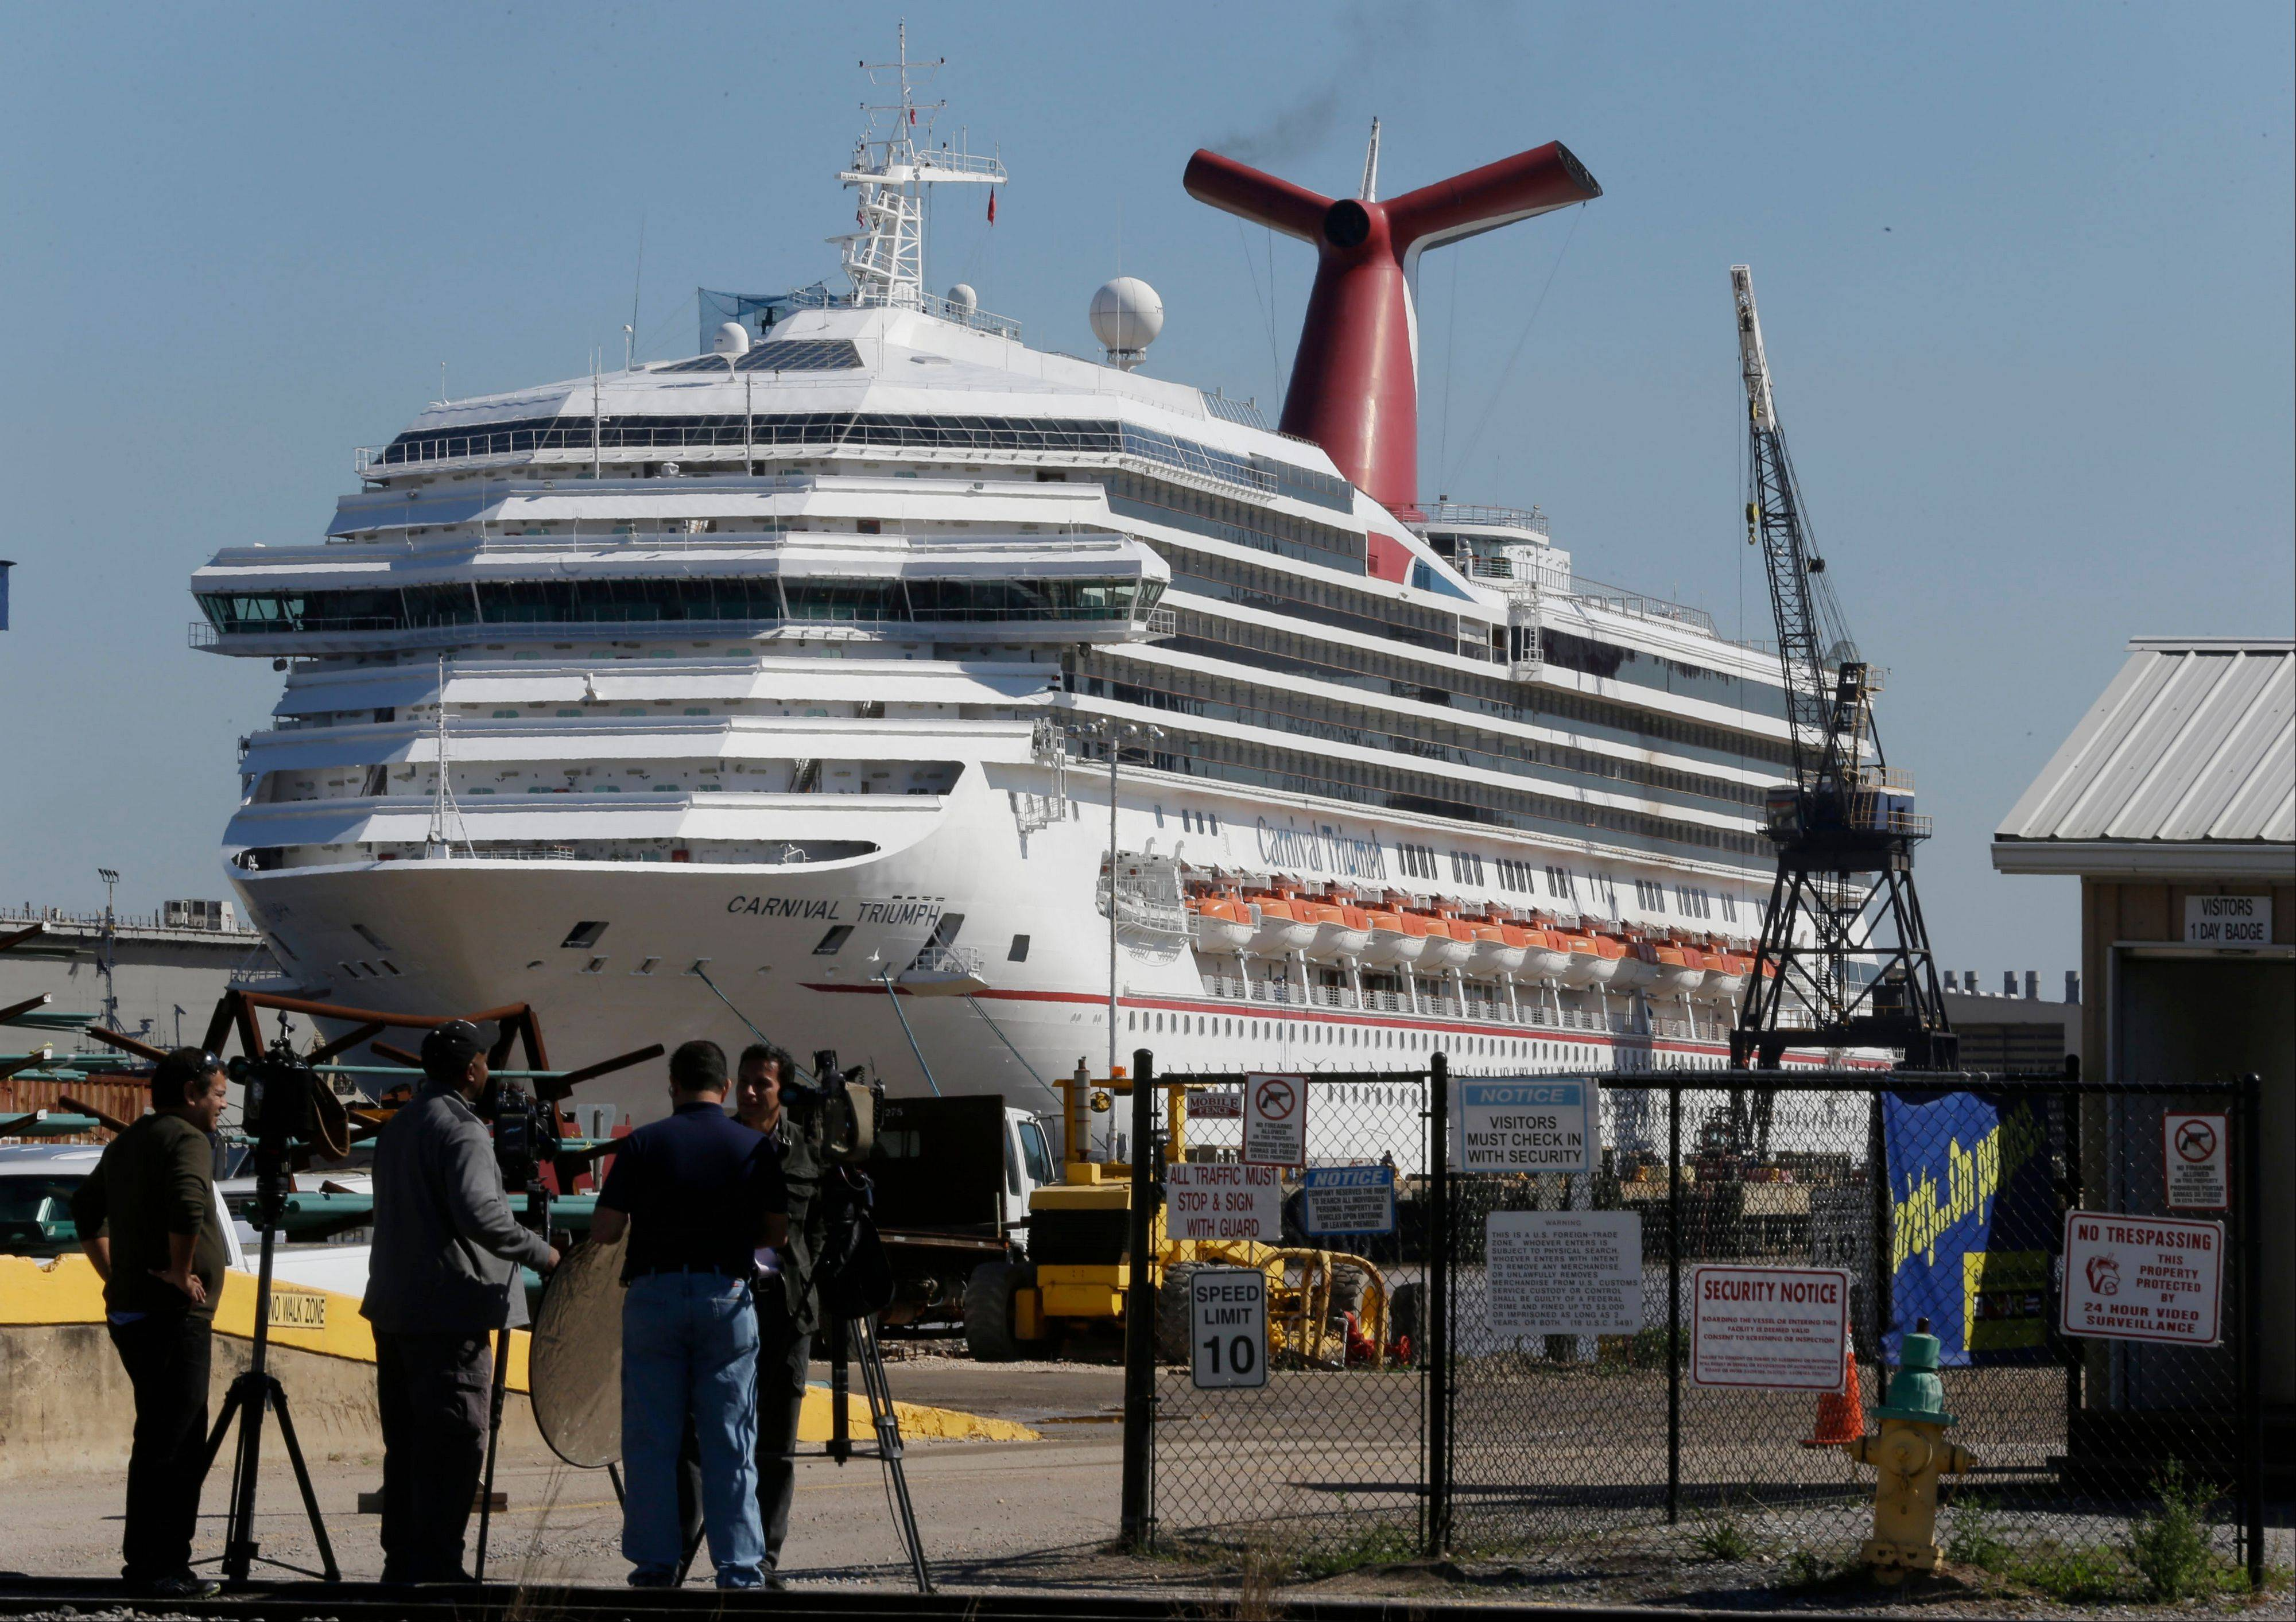 The cruise ship Carnival Triumph is moored at a dock in Mobile, Ala., Friday, Feb. 15, 2013.